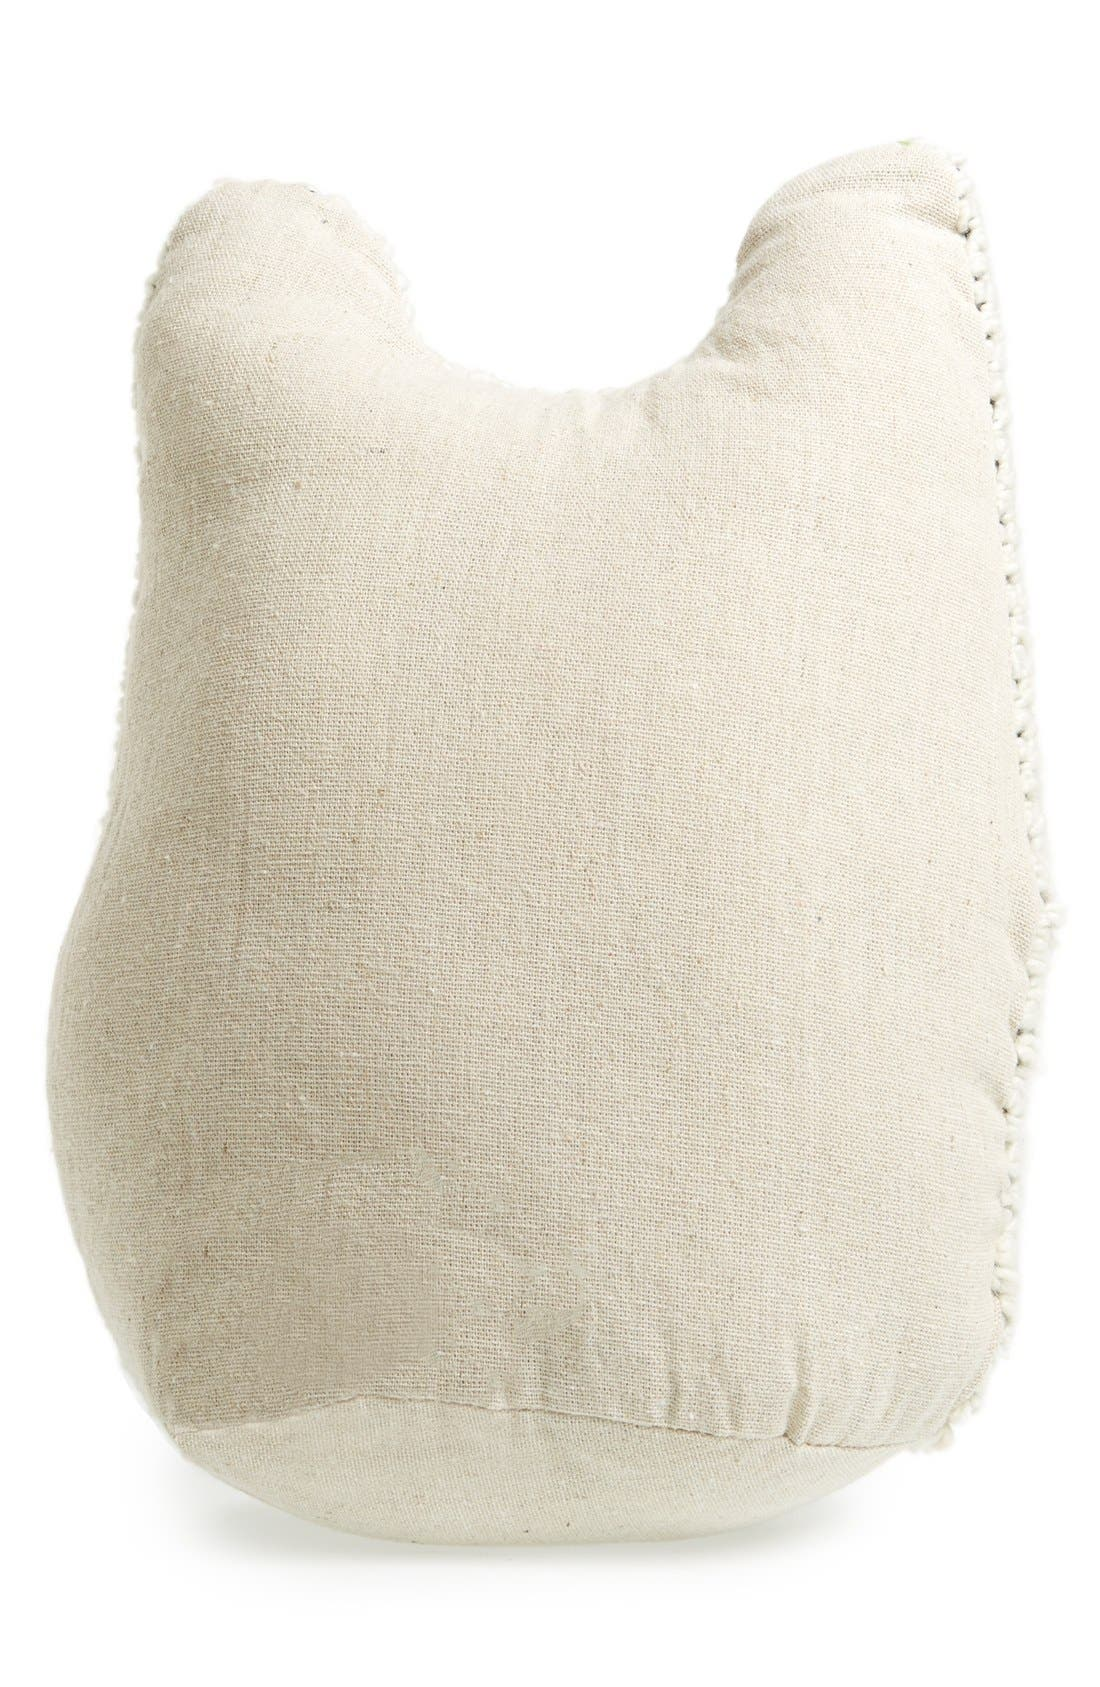 Alternate Image 2  - Levtex Knit Owl Accent Pillow